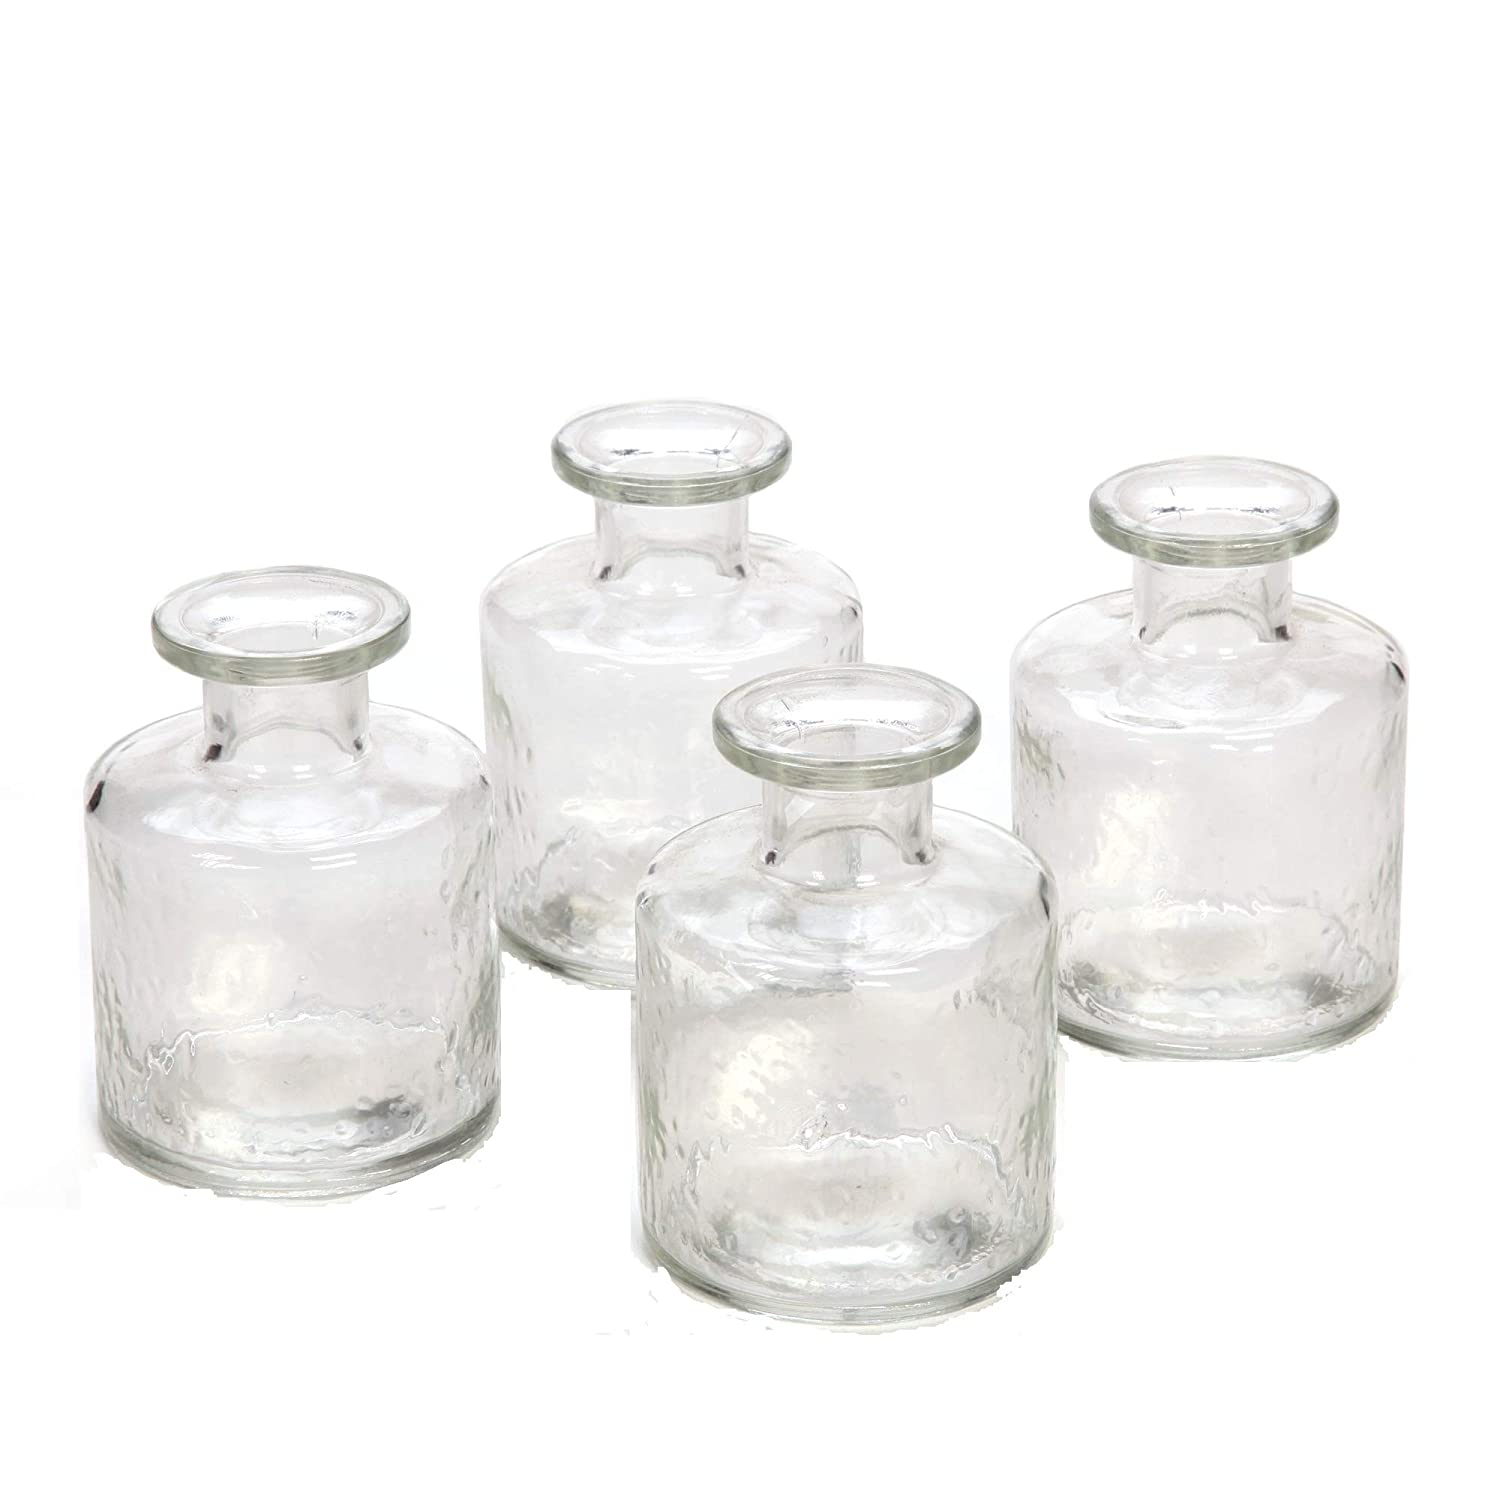 Hosley's Set of 4 Glass Diffuser Bottles - 100ml. Ideal Gift for Wedding, Party, Use with Essential Oils, Hosley Replacement Diffusers & Reed Sticks, Diy, Crafts, Spa O4 B017O30A8C